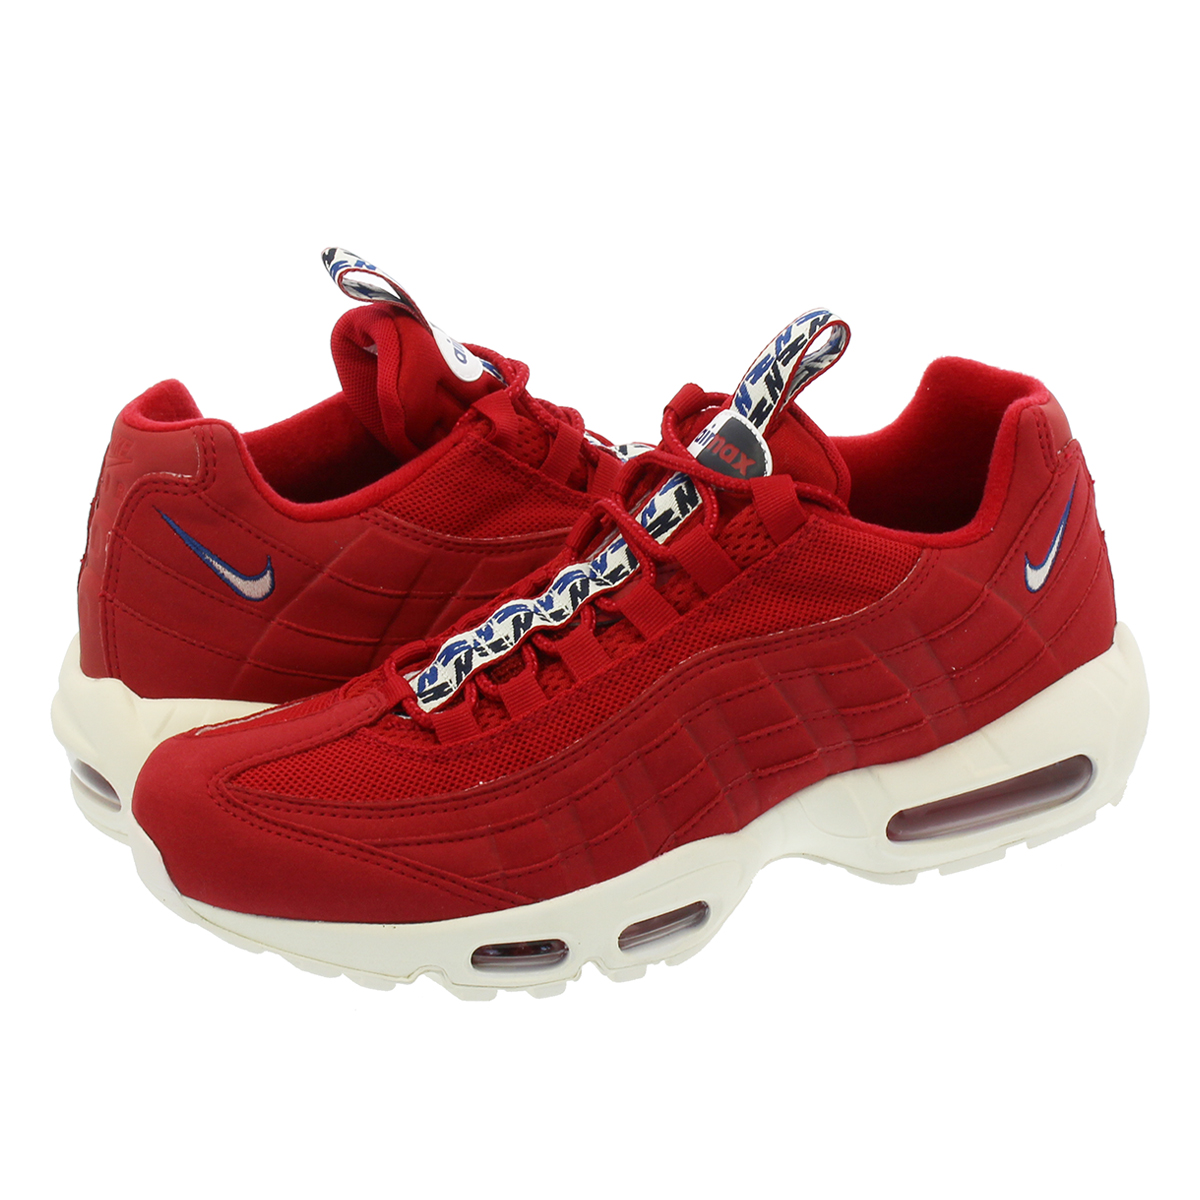 NIKE AIR MAX 95 TT ナイキ エア マックス 95 TT GYM RED/SAIL/GYM BLUE aj1844-600